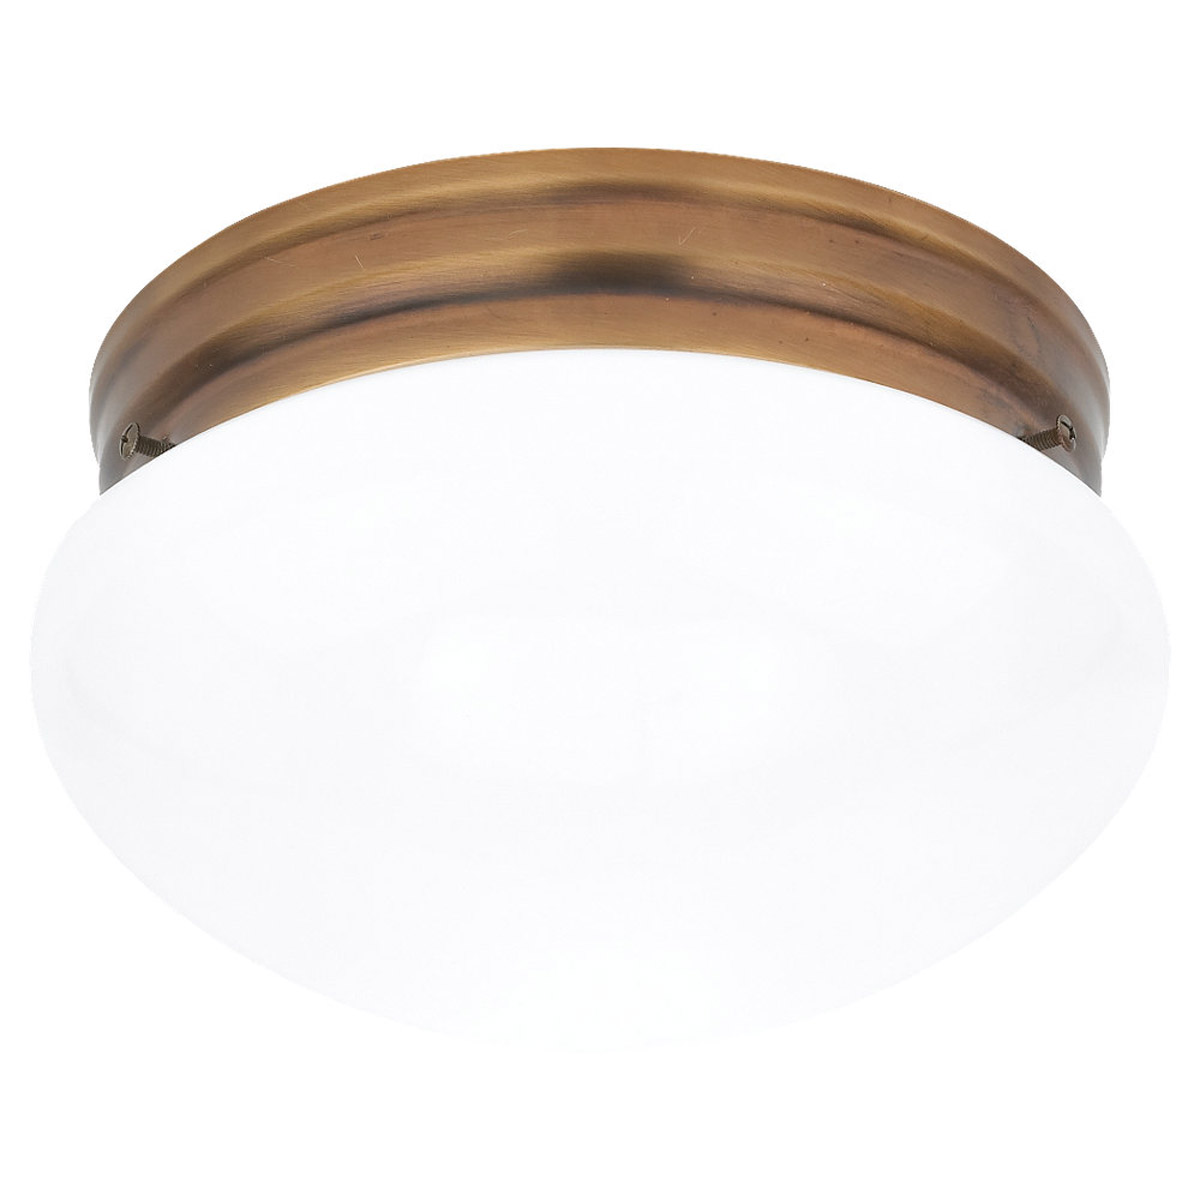 Sea Gull Lighting Webster 2 Light Flush Mount in Russet Bronze 5328-829